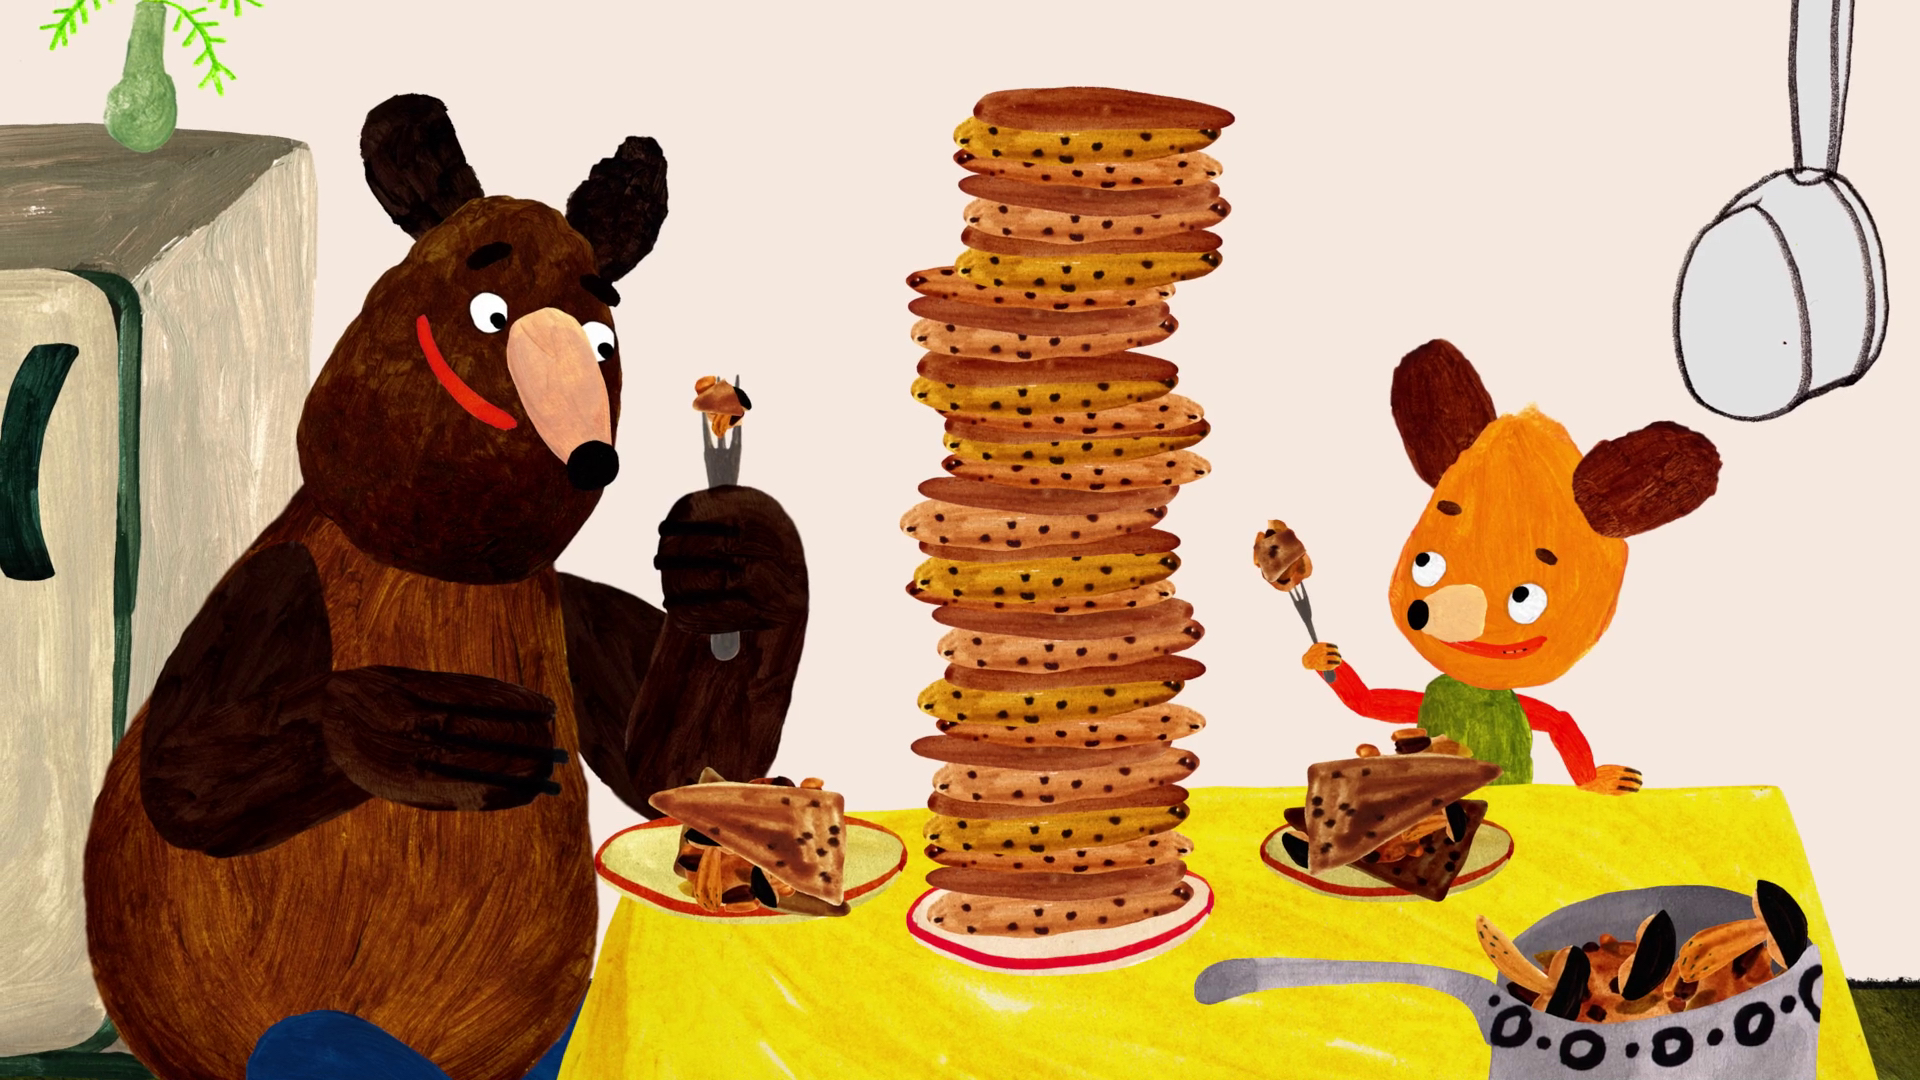 """A still from the short film """"Hungry Bear Tales."""" (Courtesy Belmont World Film)"""